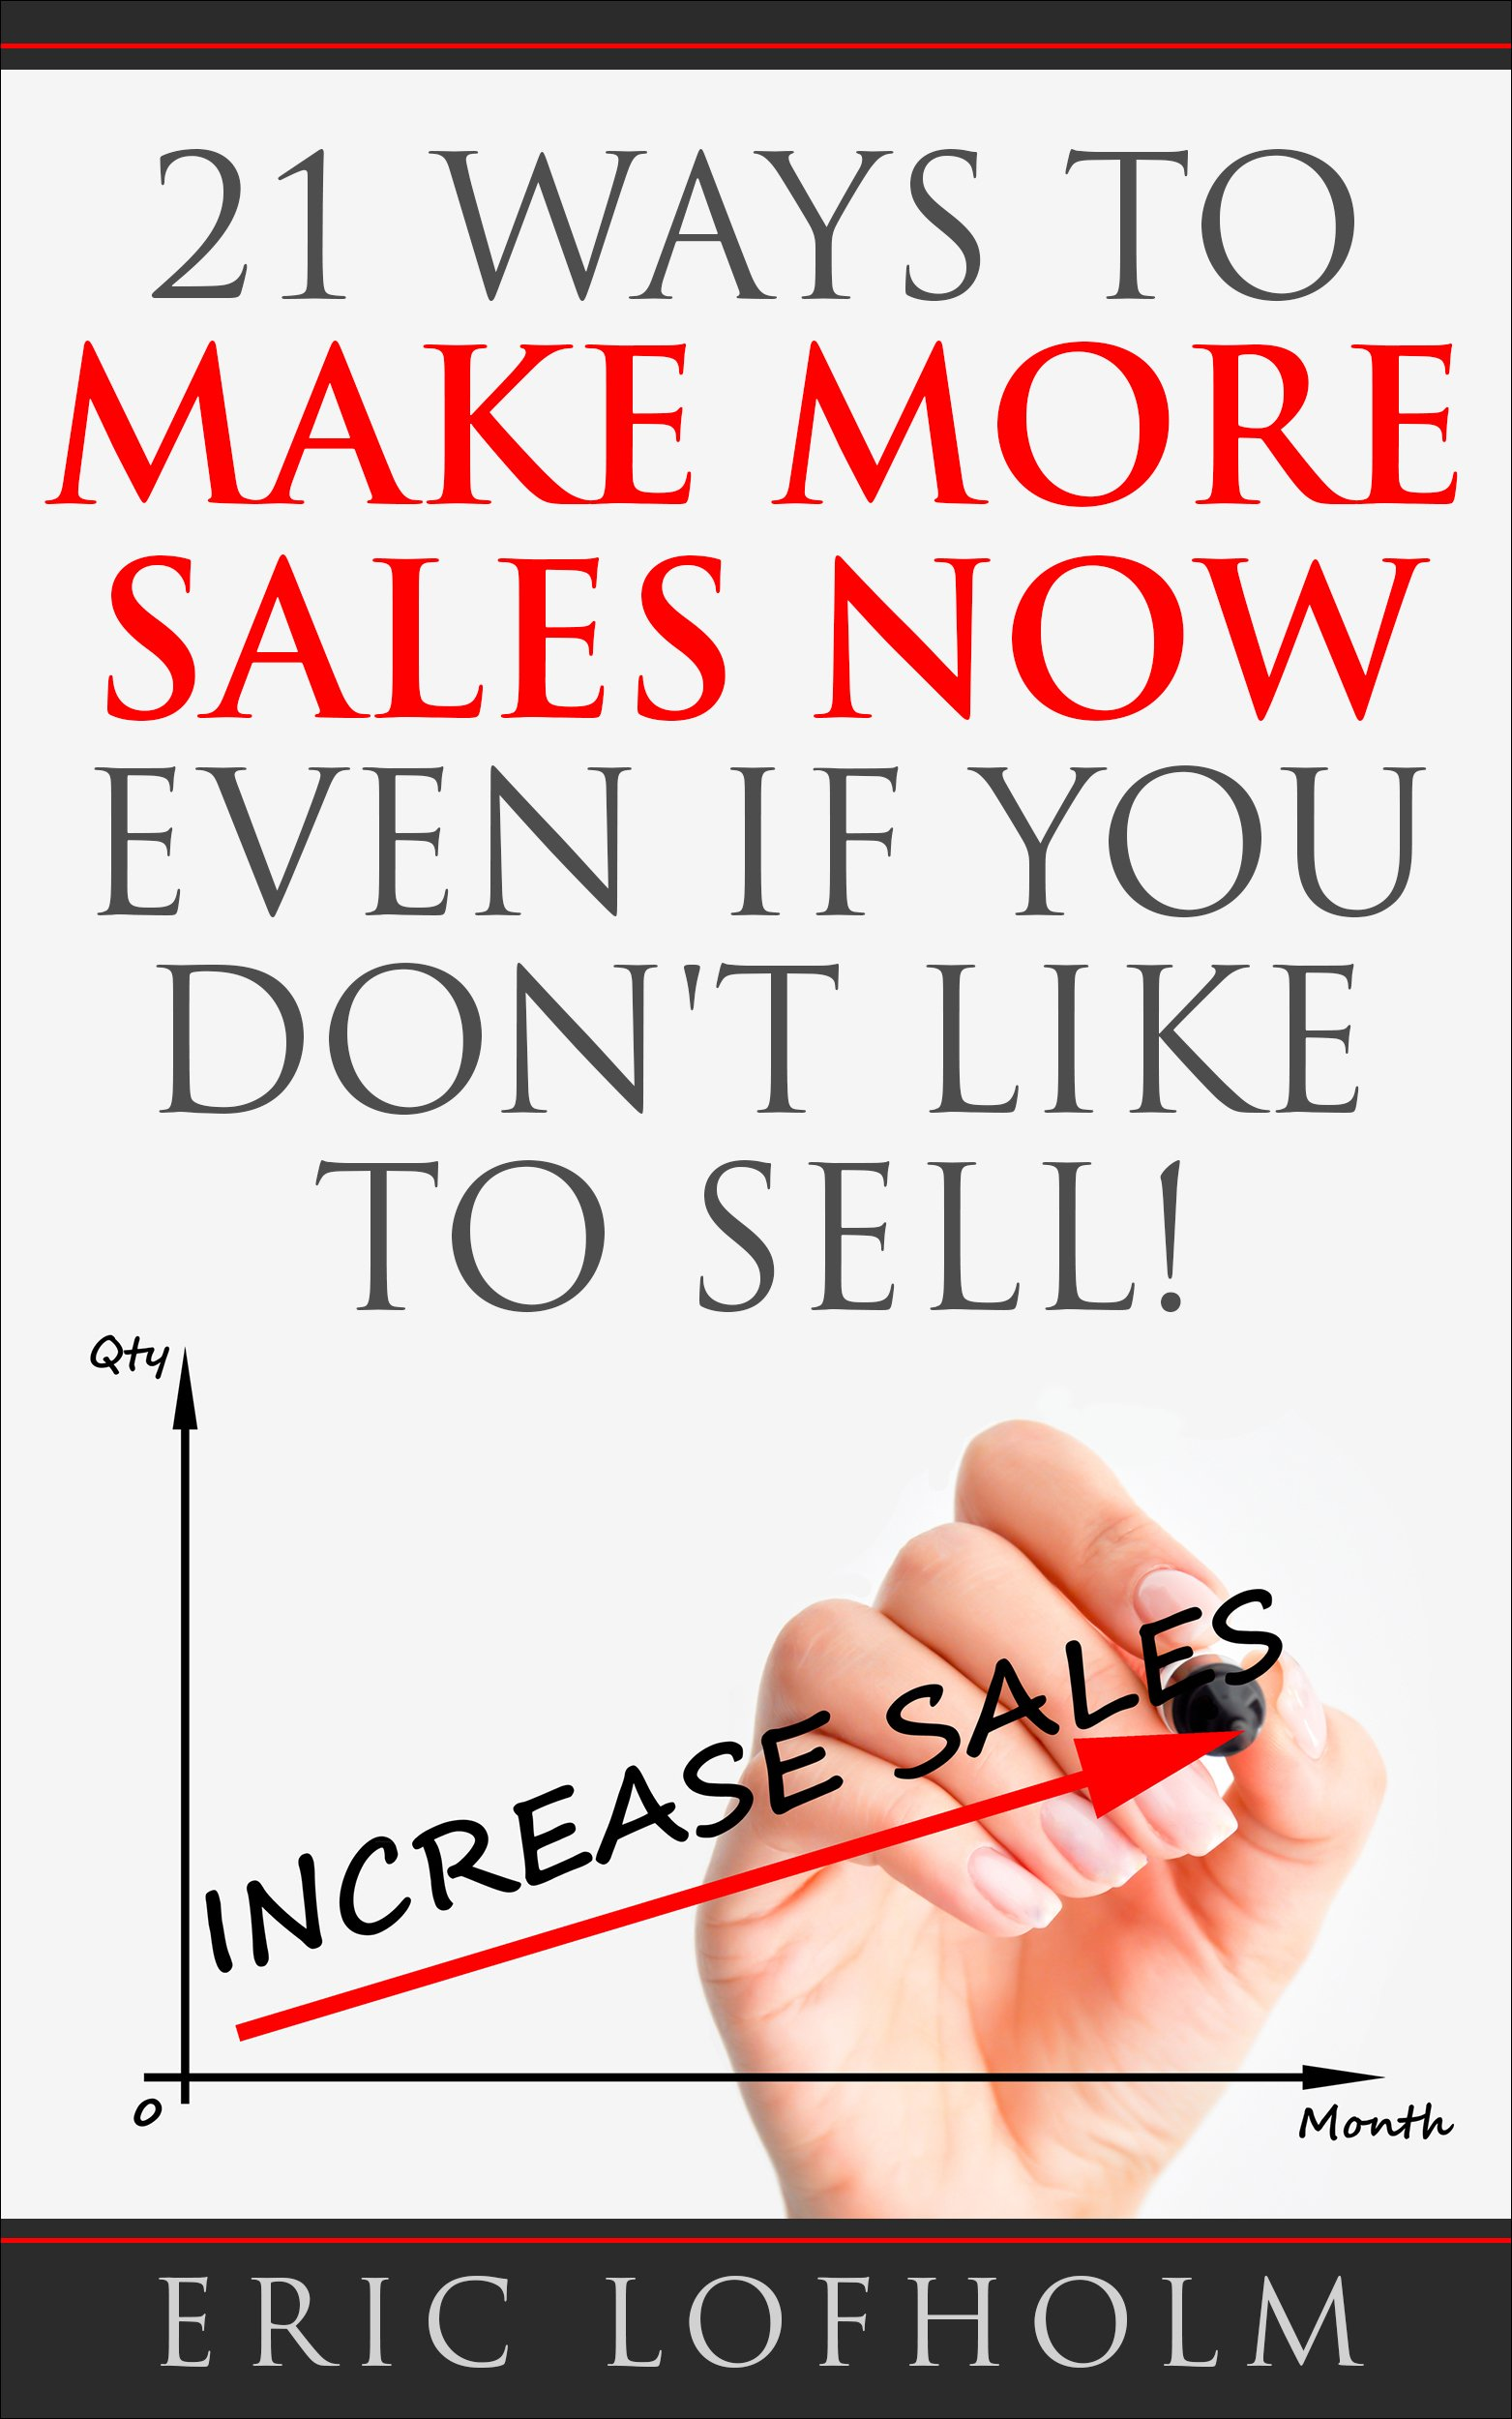 21 Ways to Make More Sales Now Even If You Don't Like to Sell!